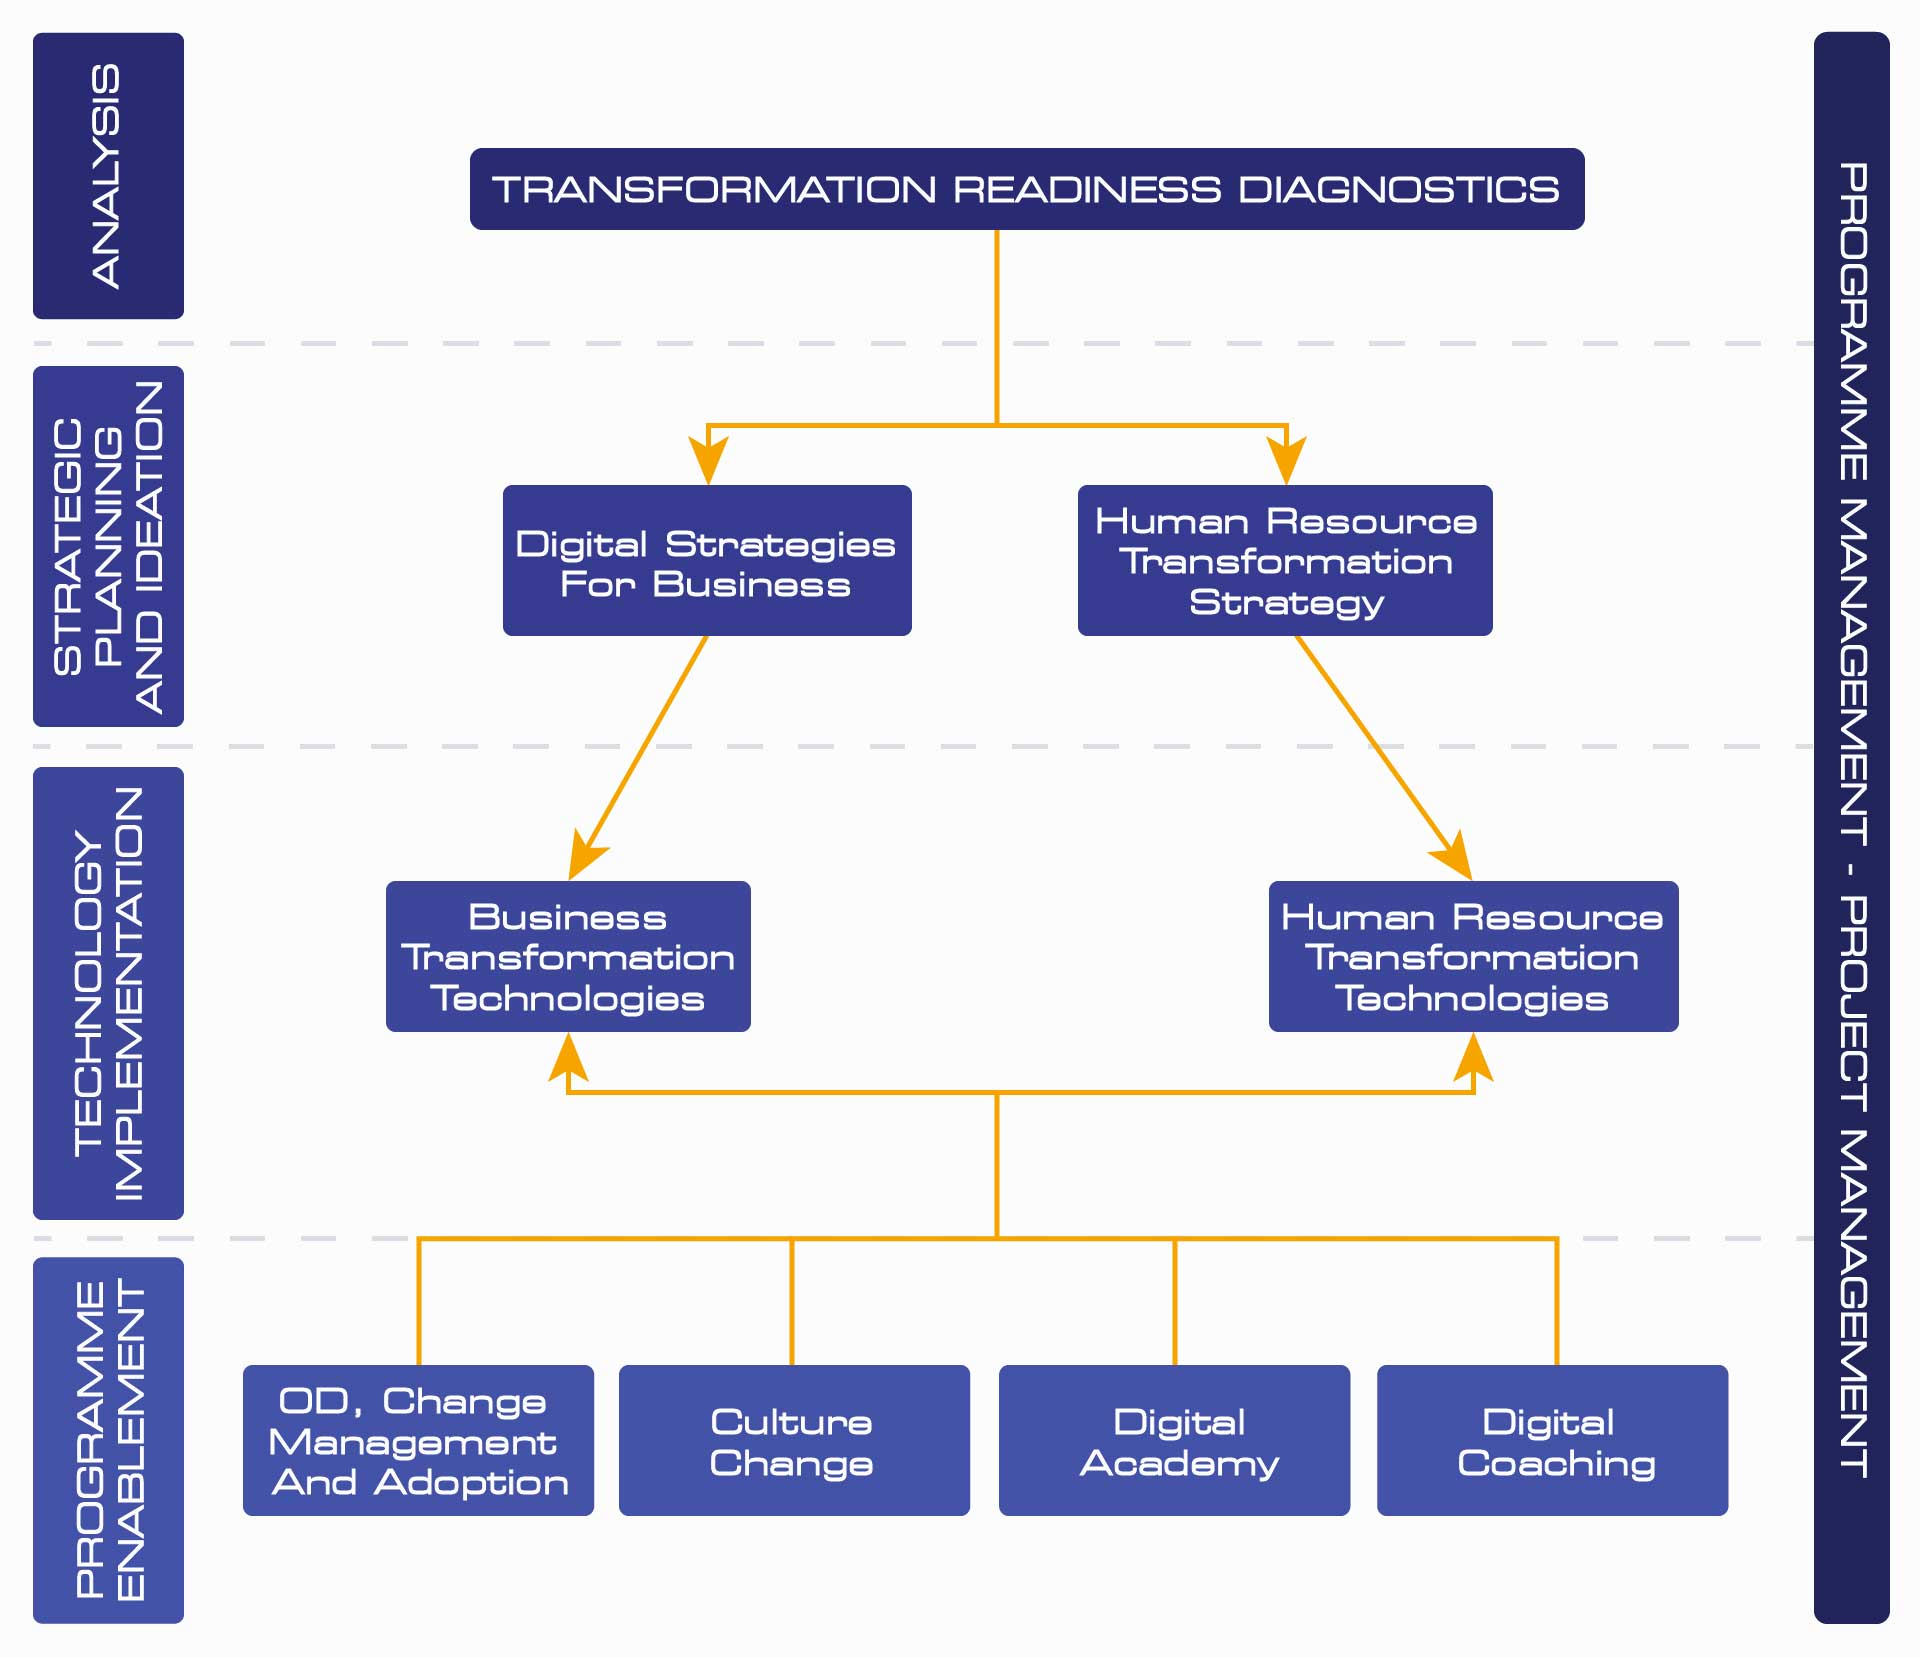 Transformation Readiness Diagnostics Diagram